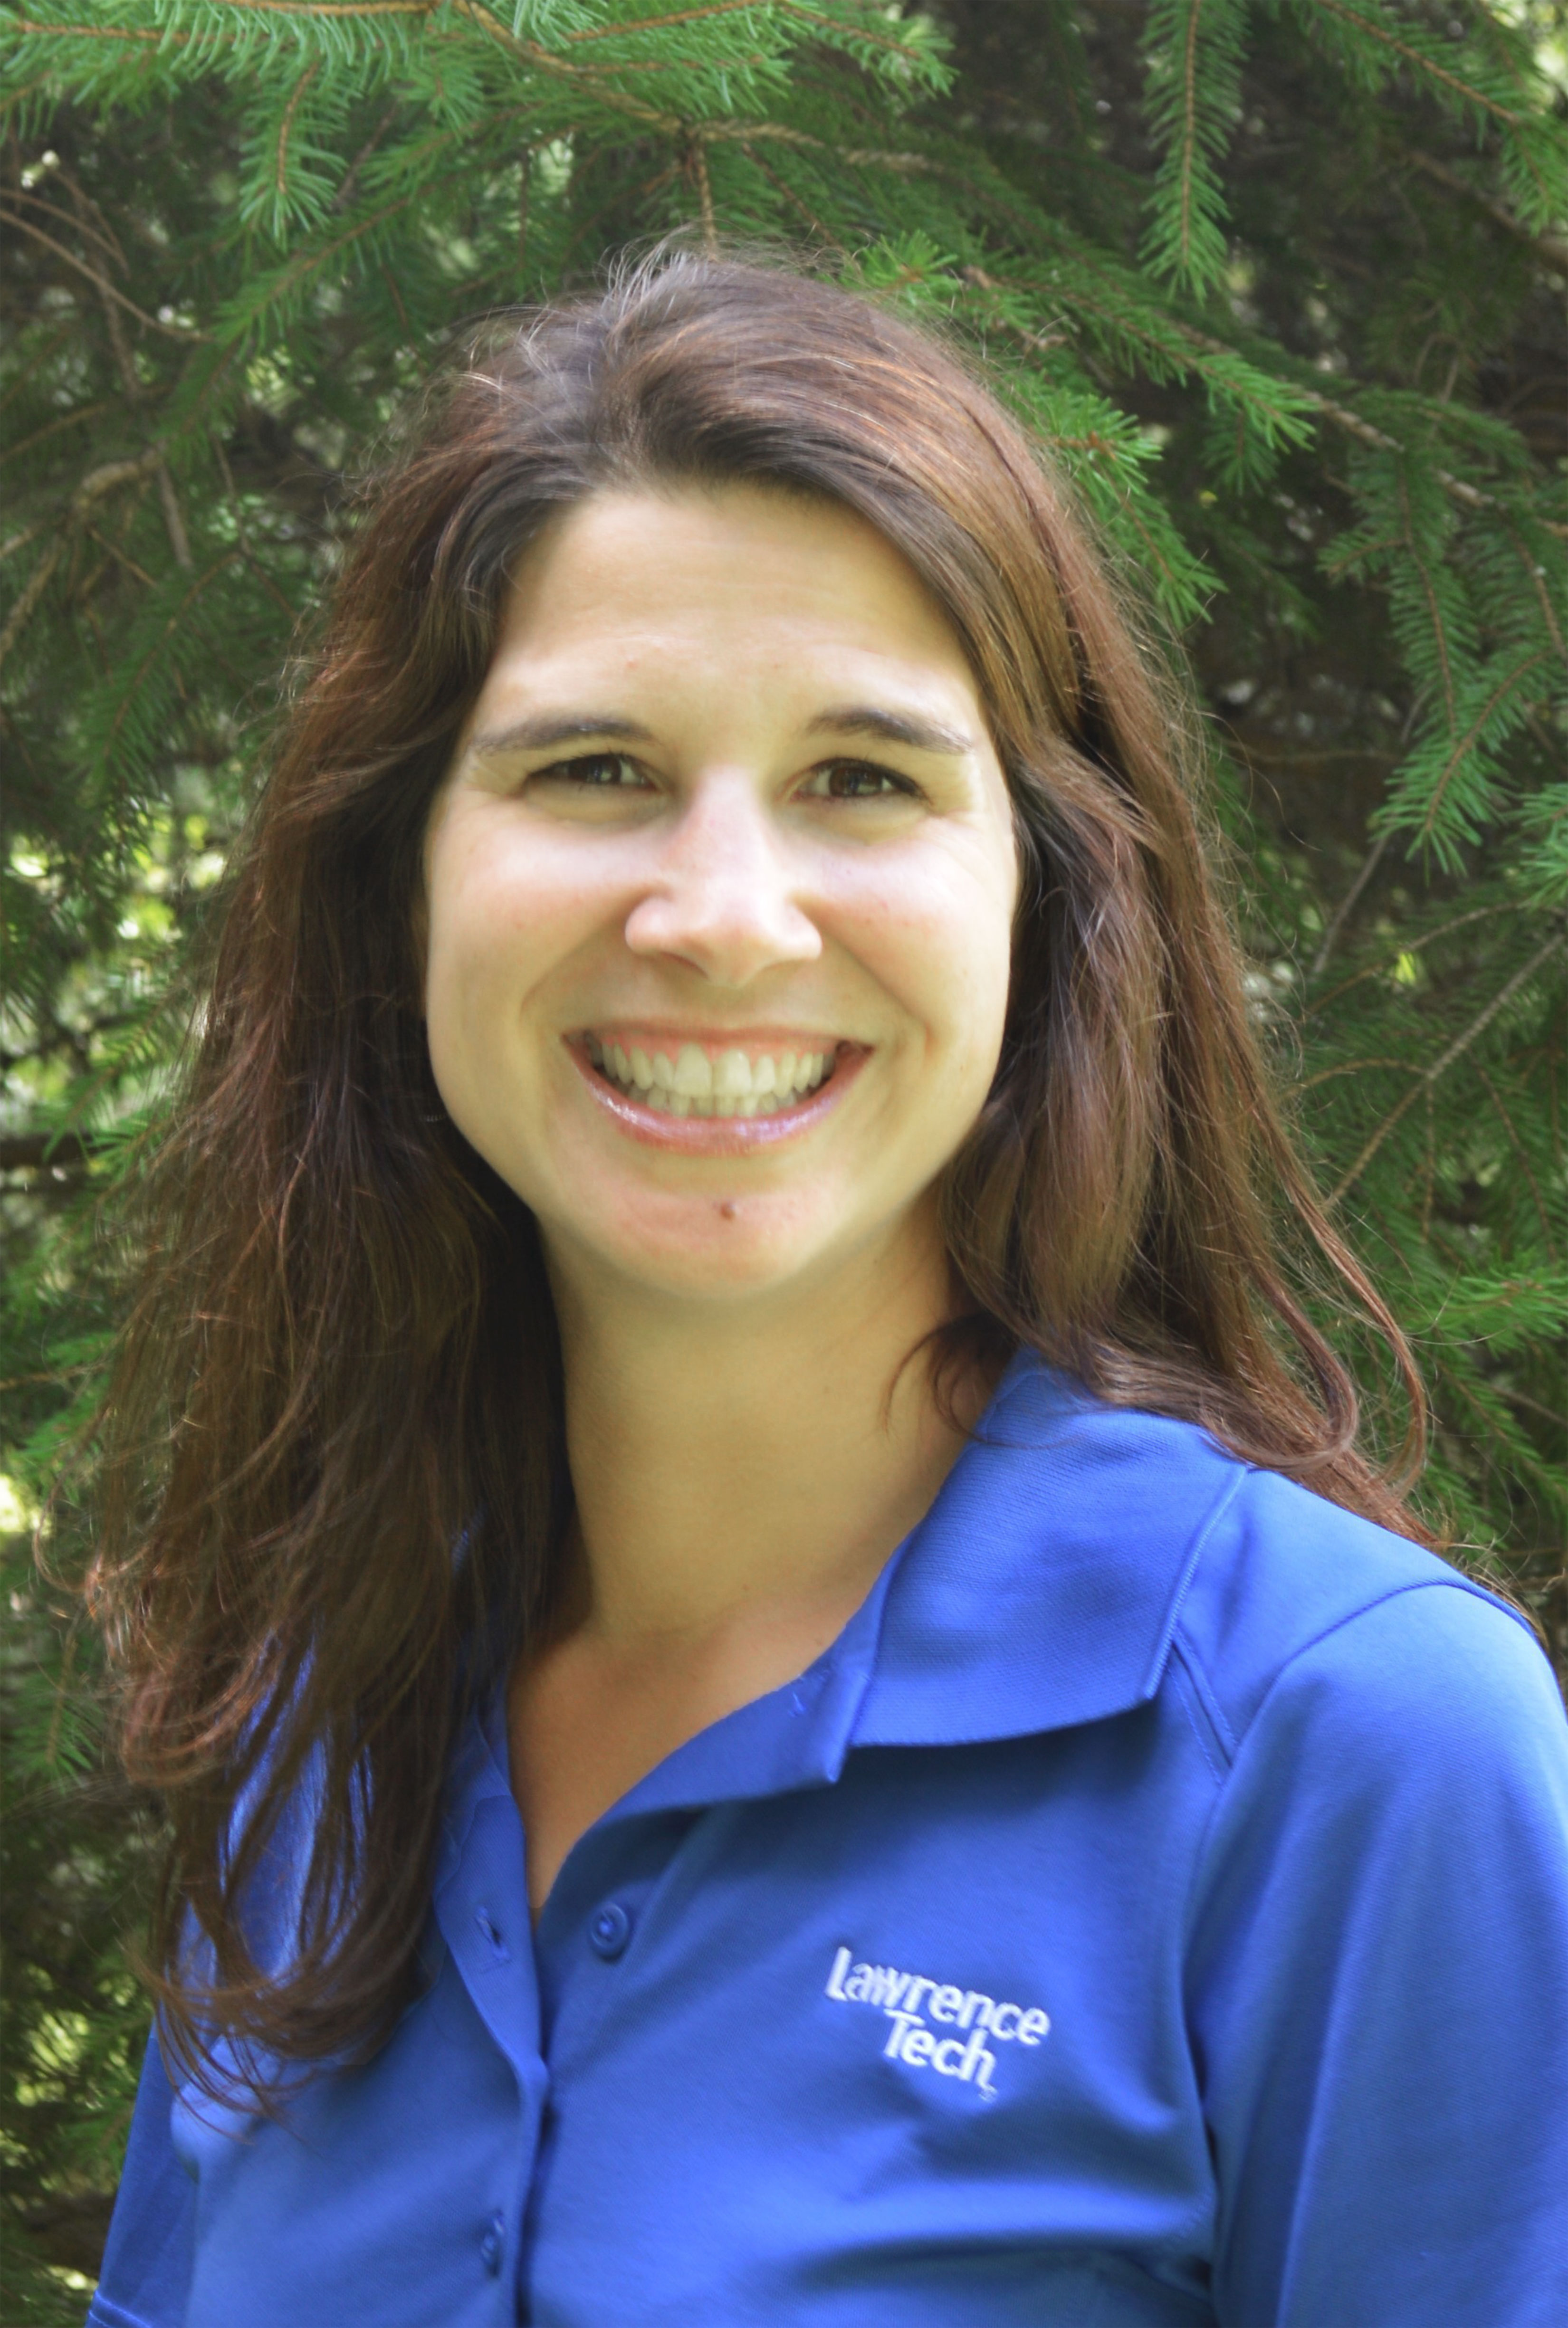 Webster, Kristi - Staff